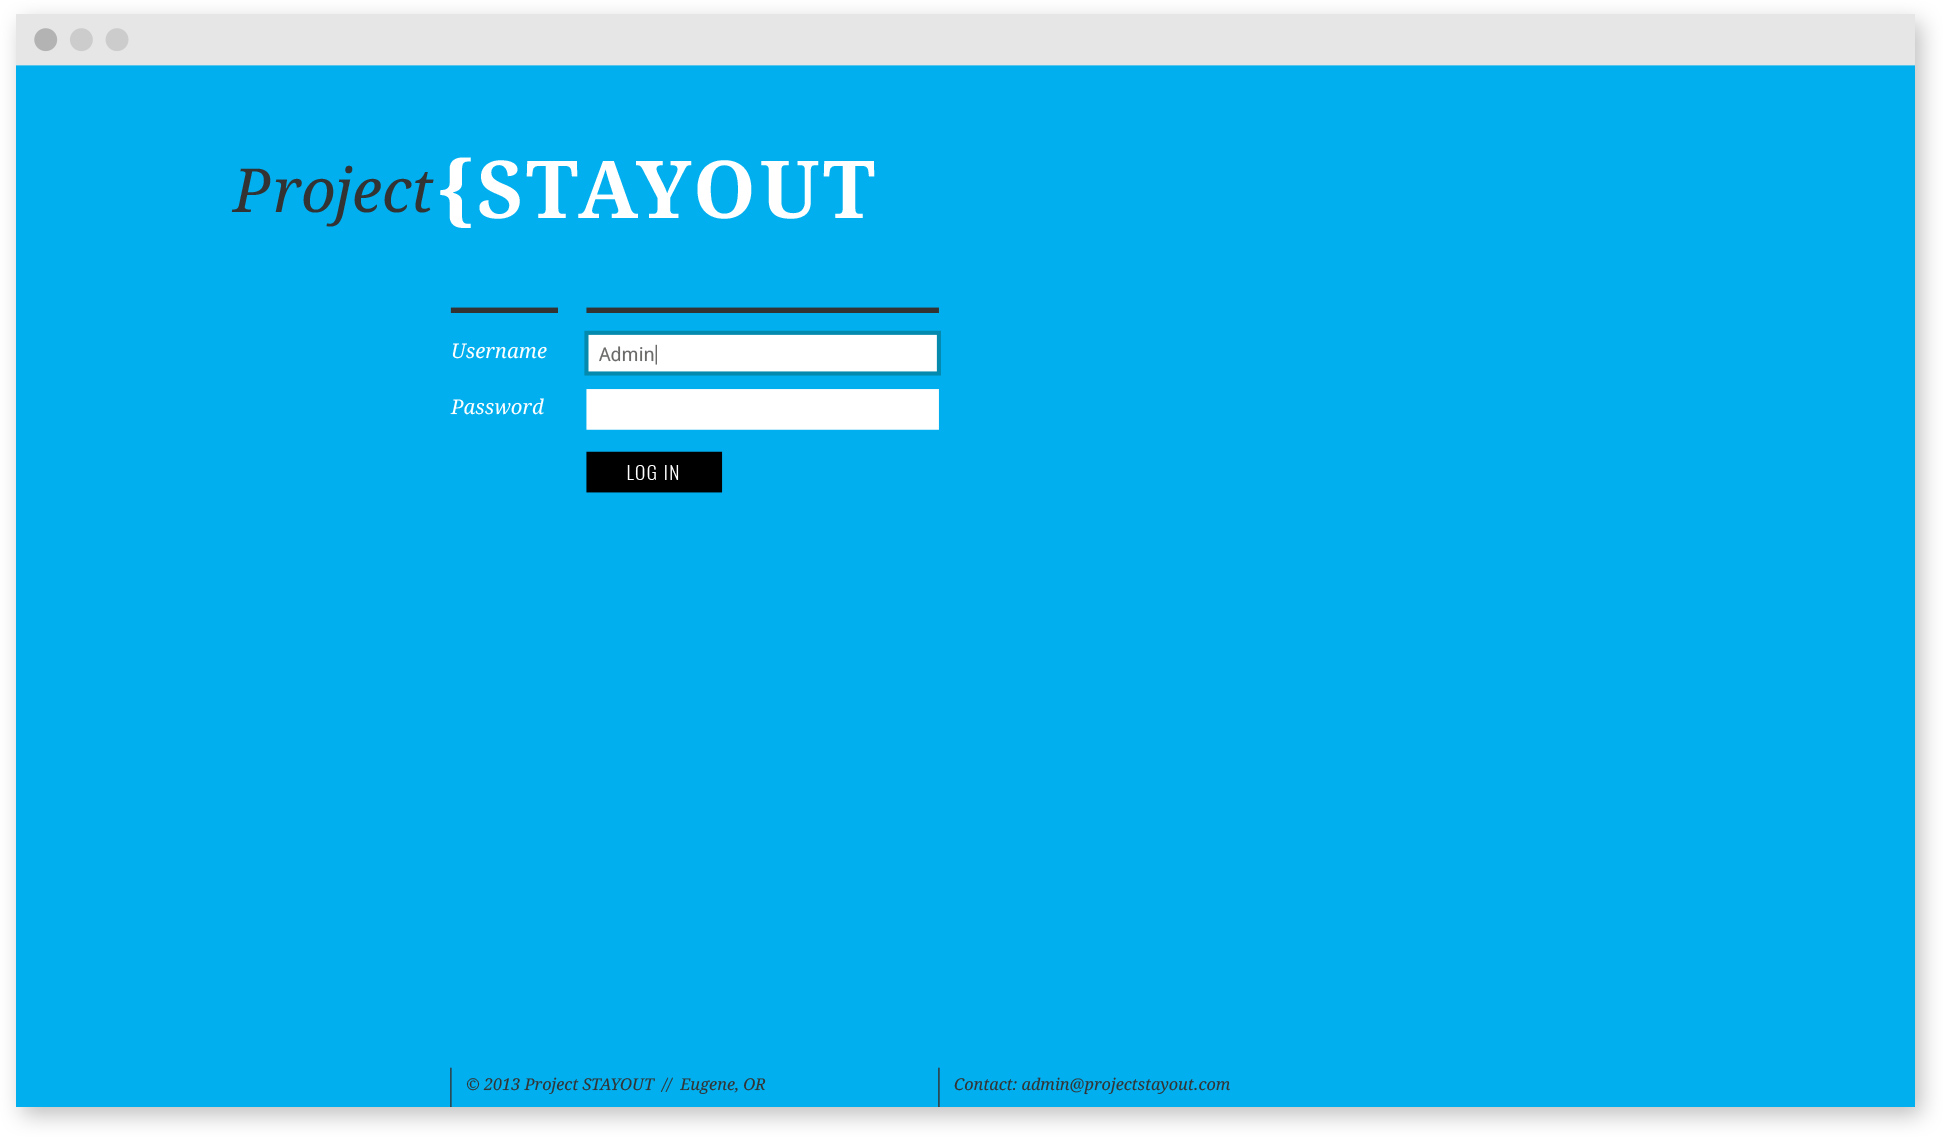 Project STAYOUT Sign in